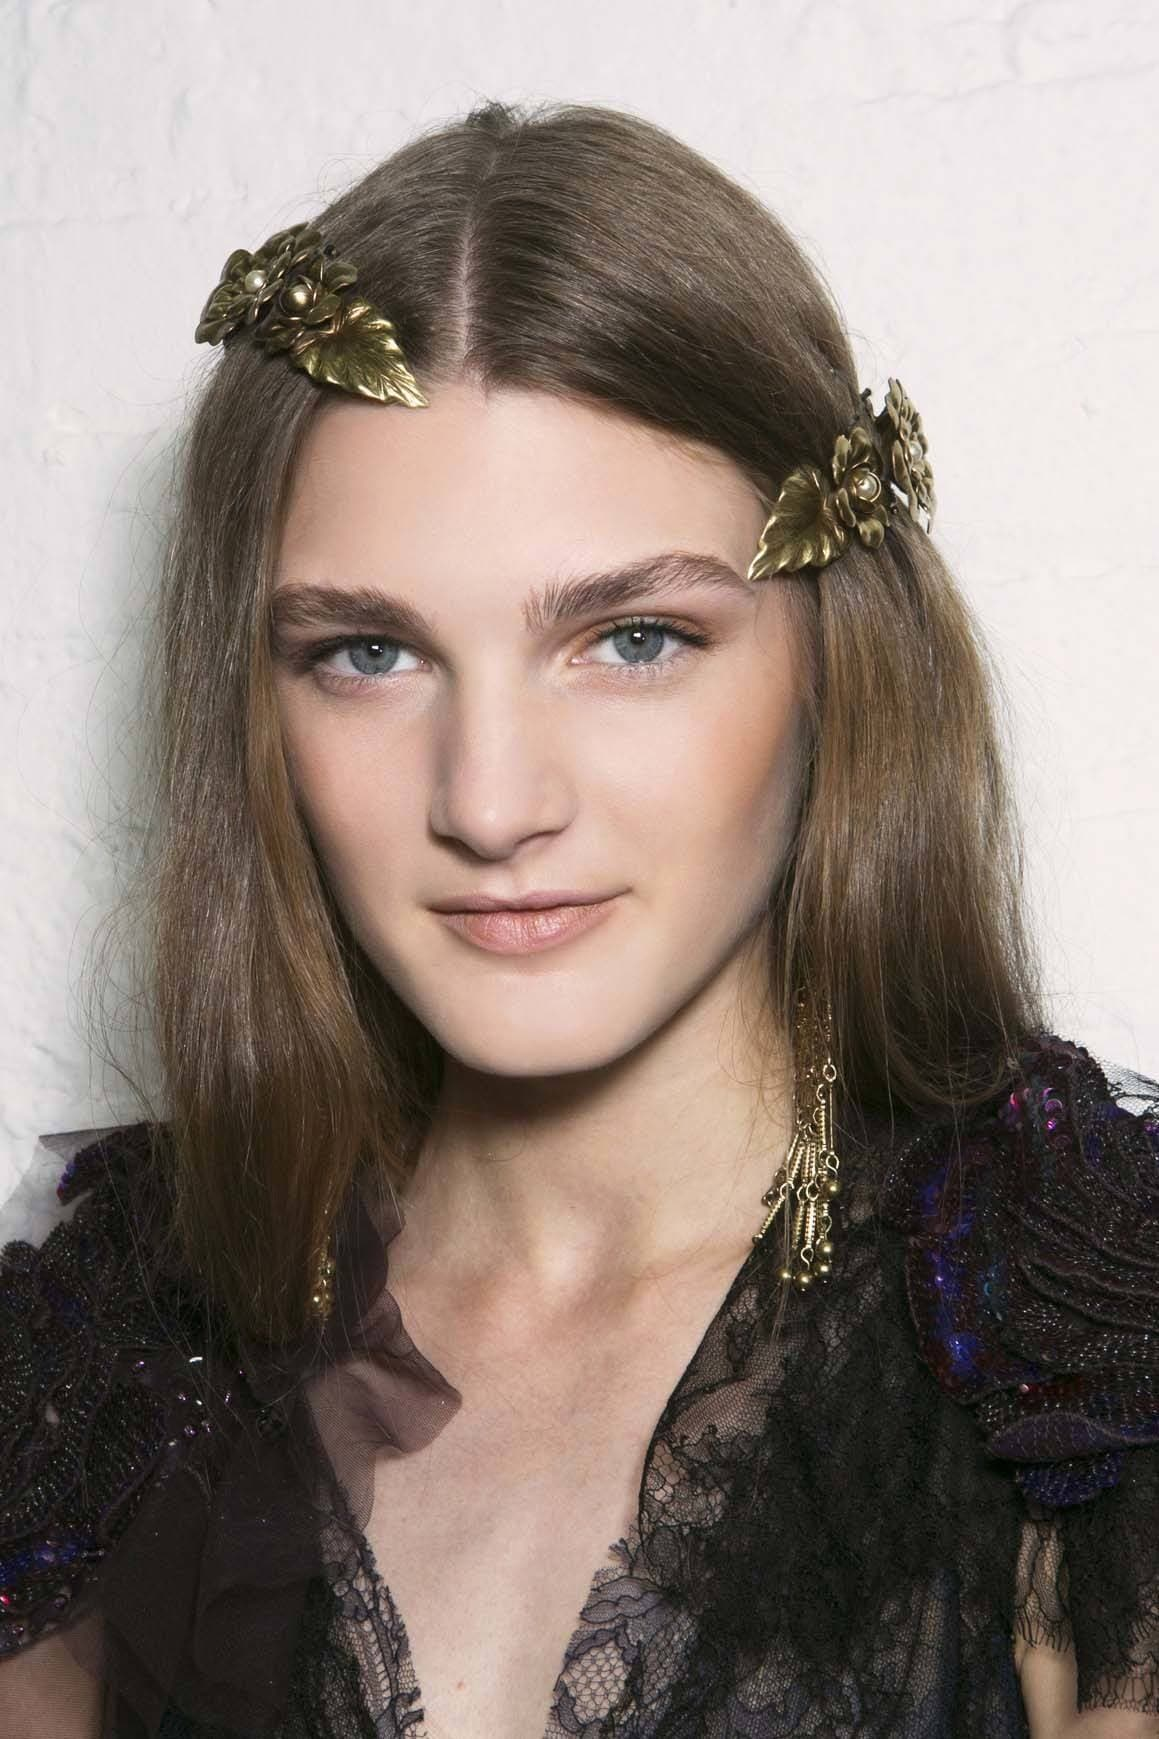 New Hair Trends include bold and eye-catching accessories.